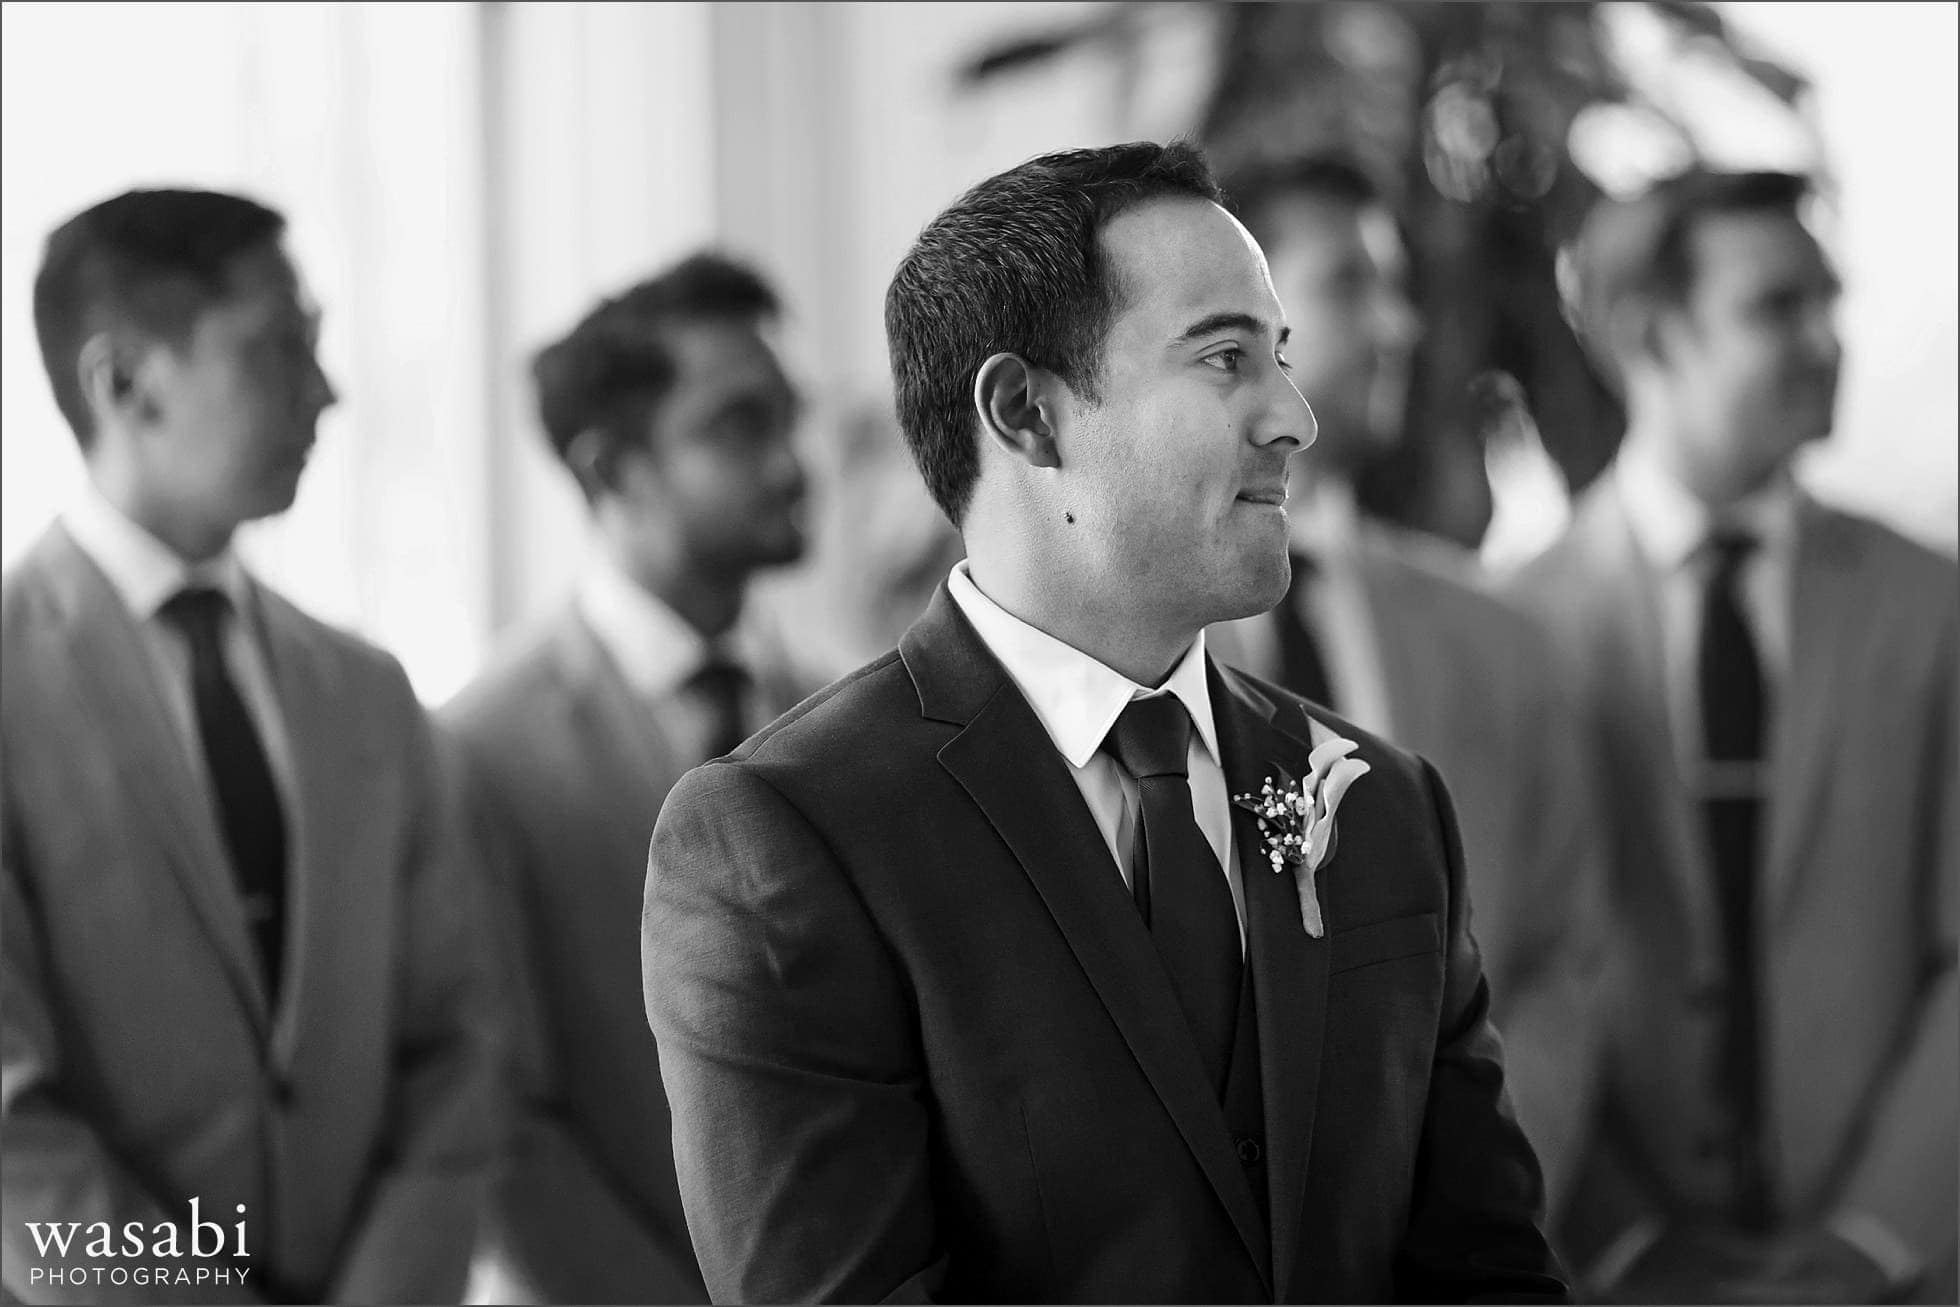 groom reaction to bride walking down aisle during wedding ceremony at South Shore Cultural Center